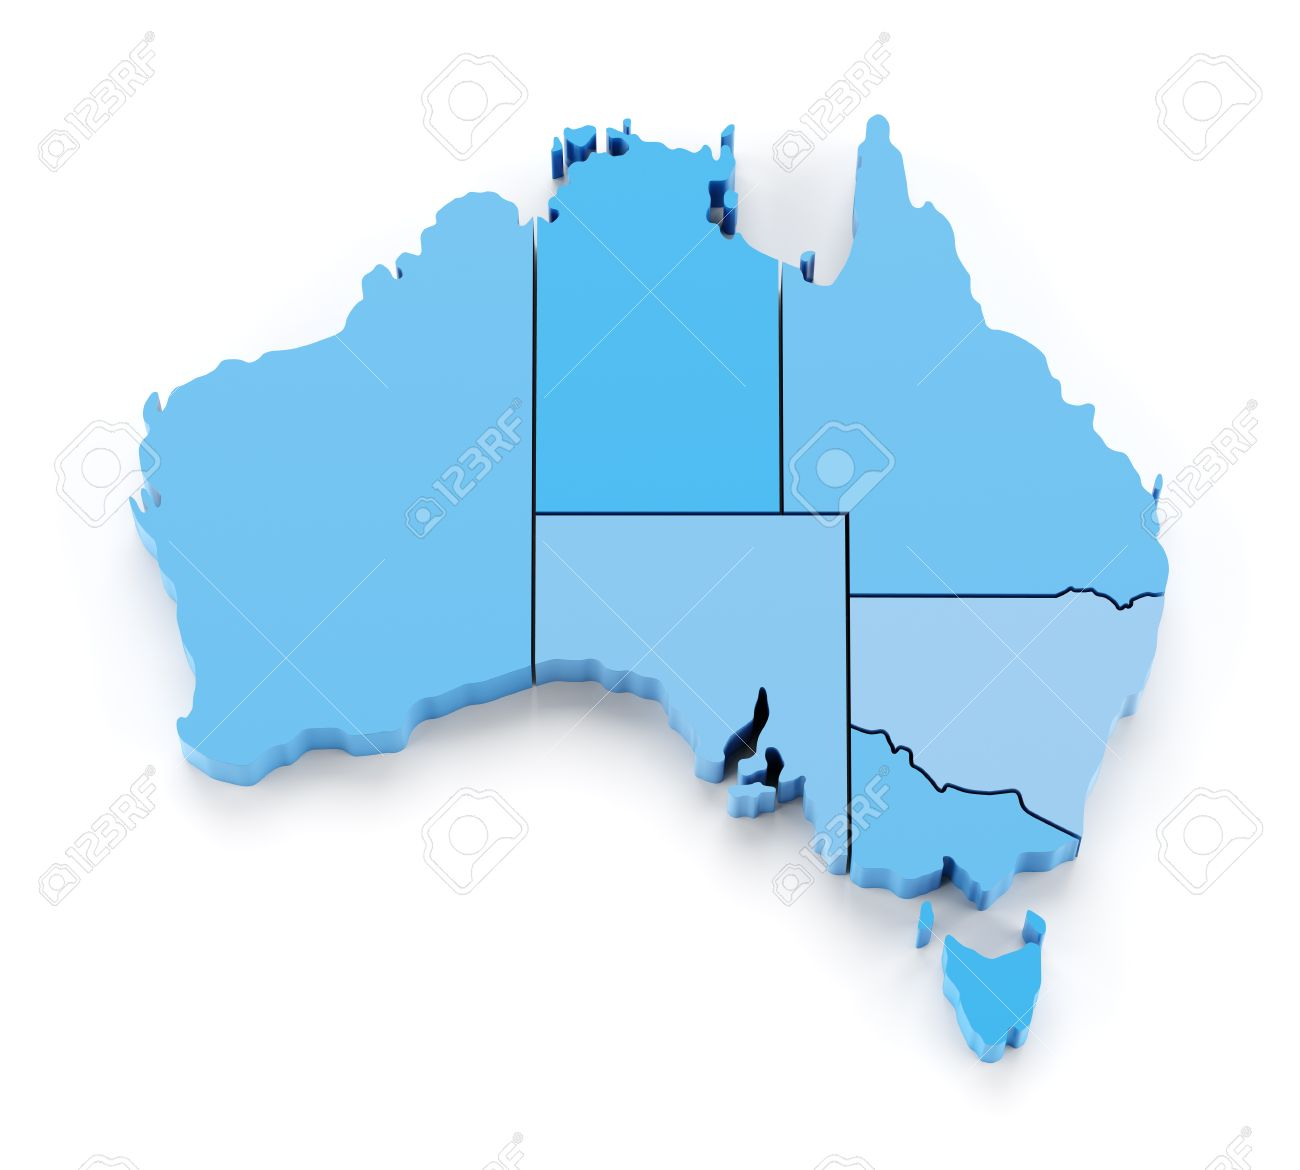 Map Of Australia With State Borders.Extruded Map Of Australia With State Borders 3d Render